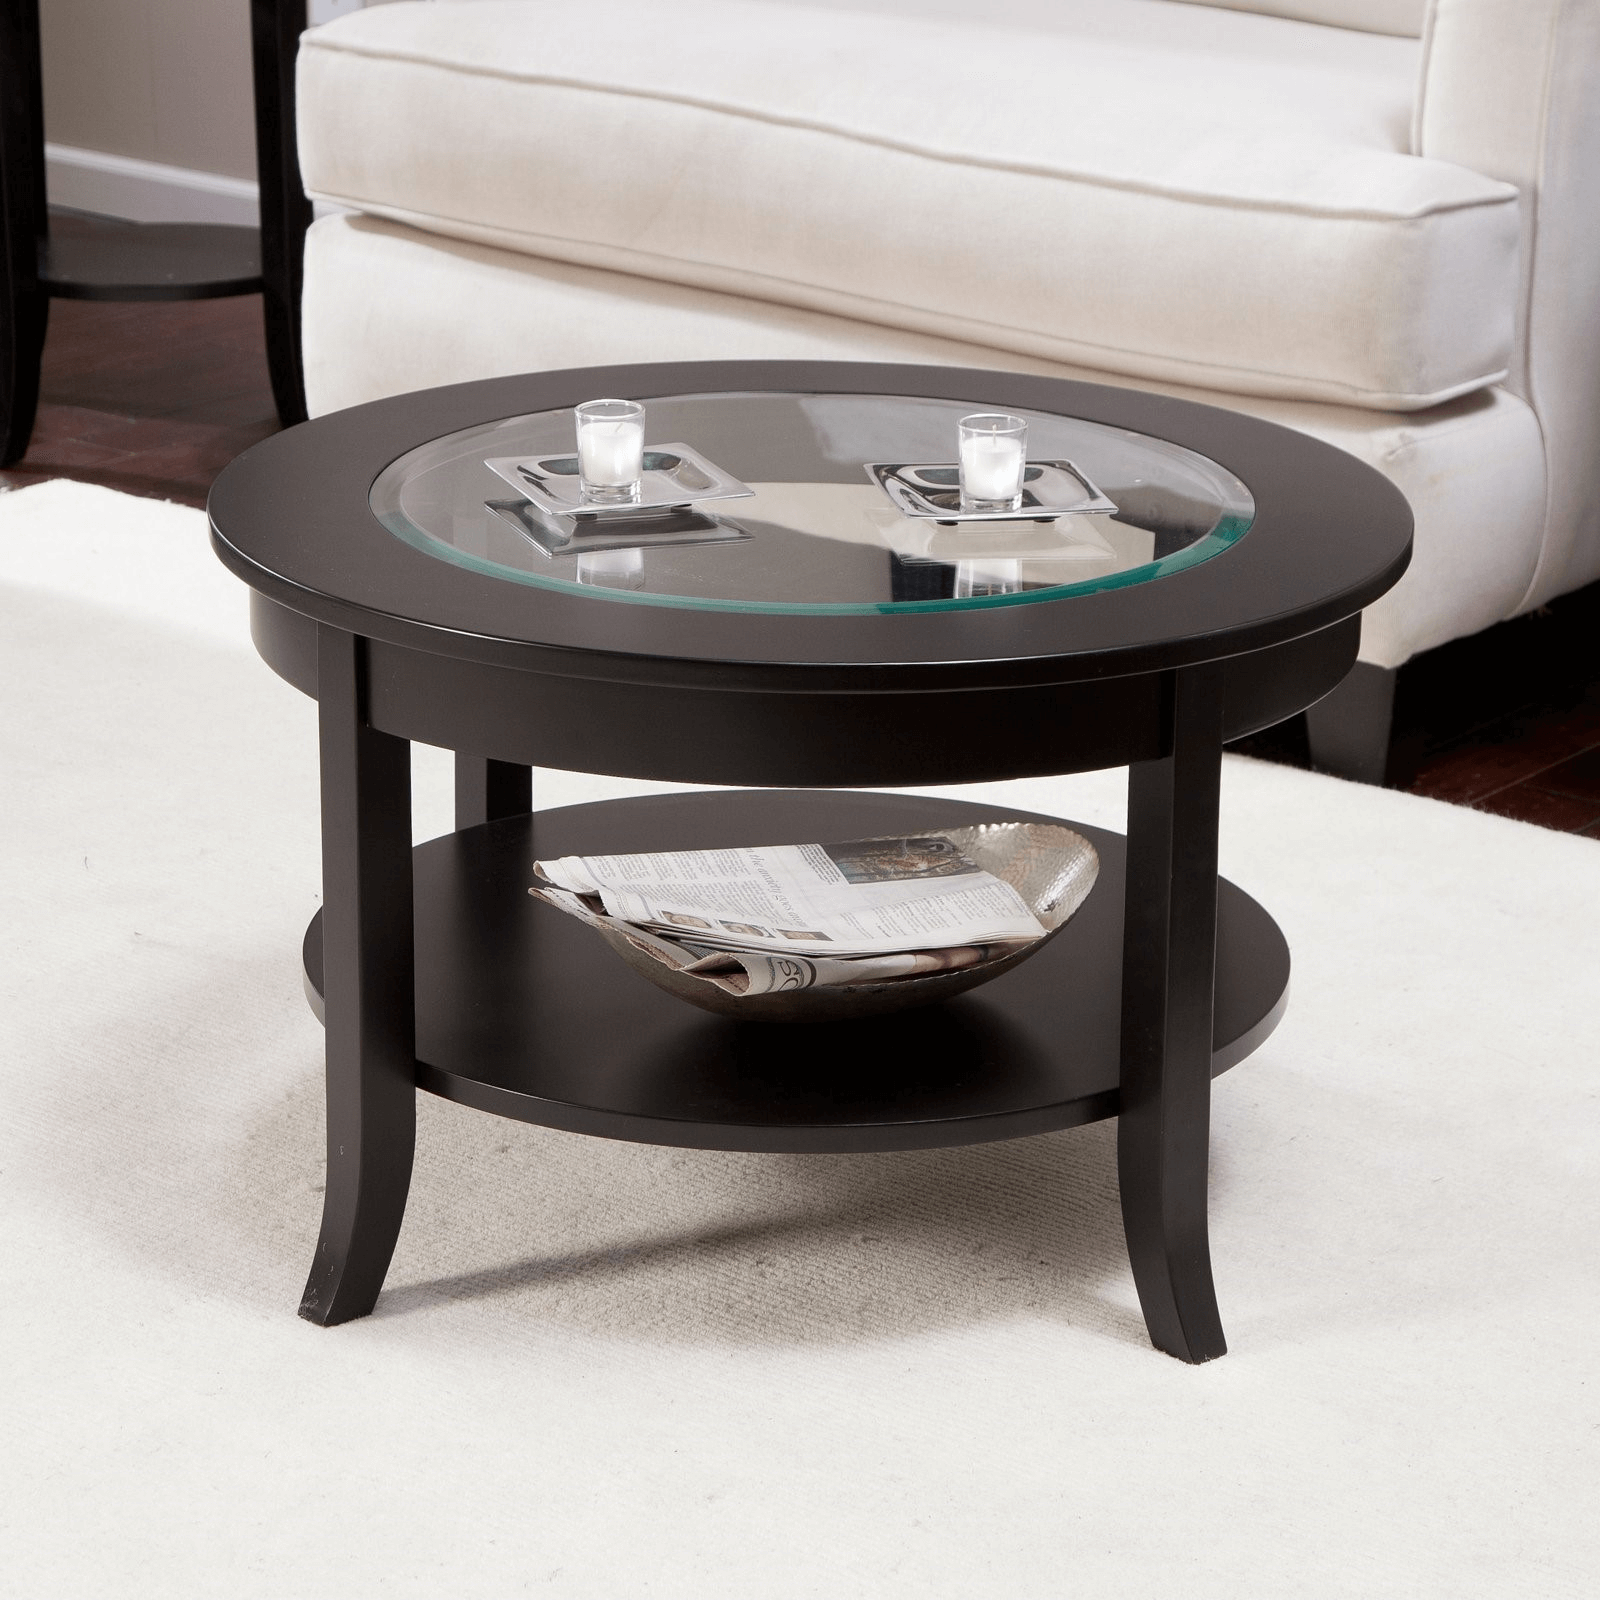 Candles or little lamp can be good ideas for black round coffee table decor ideas